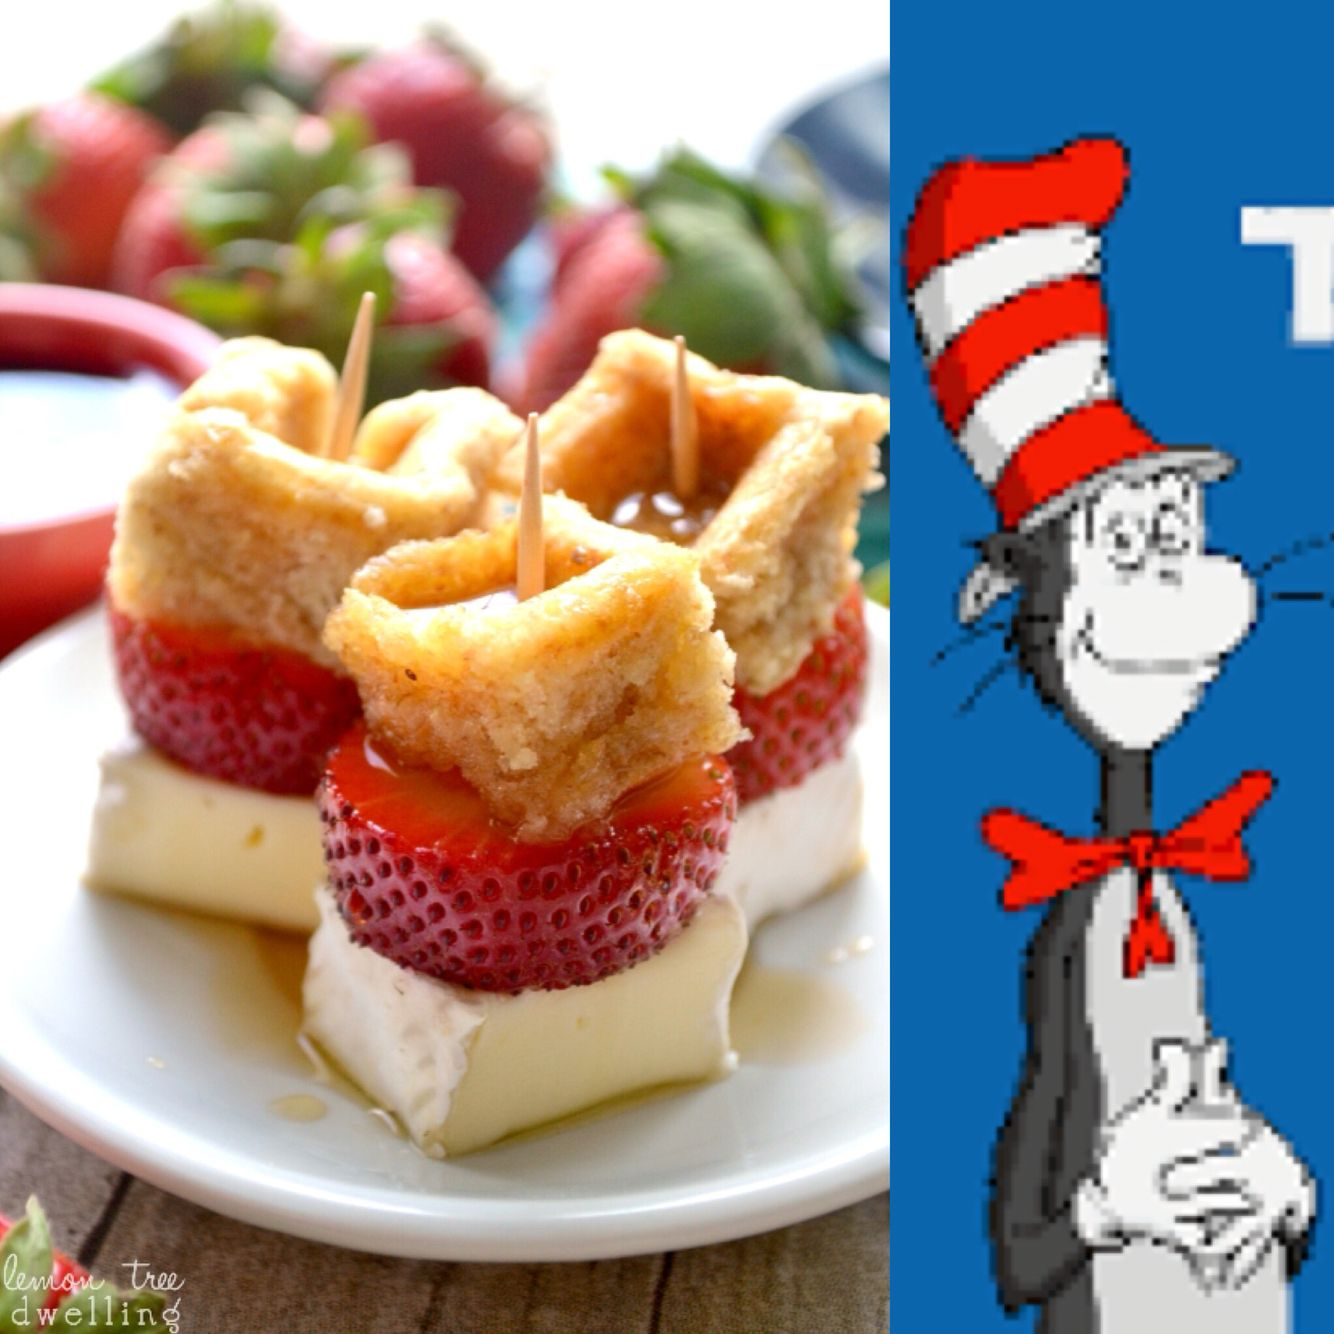 Book themed baby shower brunch menu: the cat in the hat, stacked waffle, strawberries and brie bites